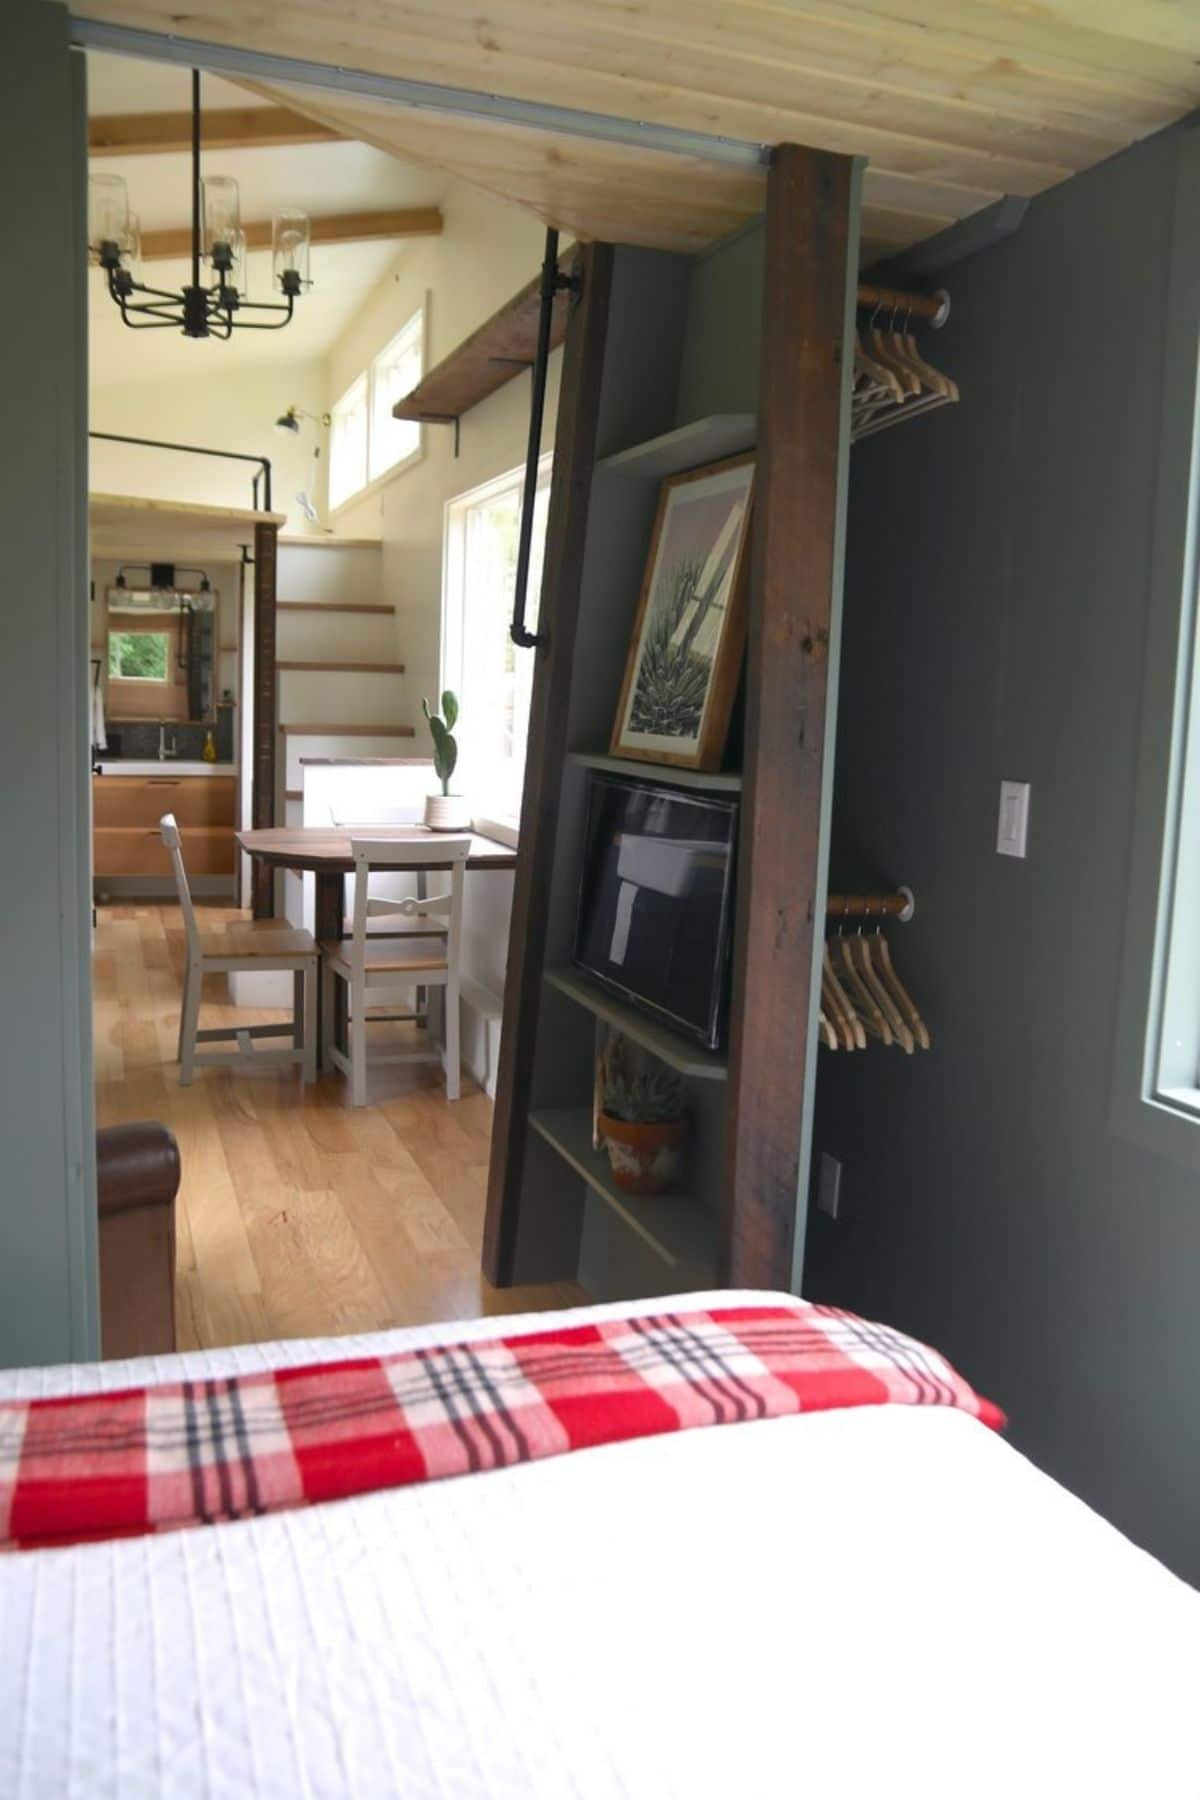 view into tiny home living room from tiny bedroom with bookcase by door